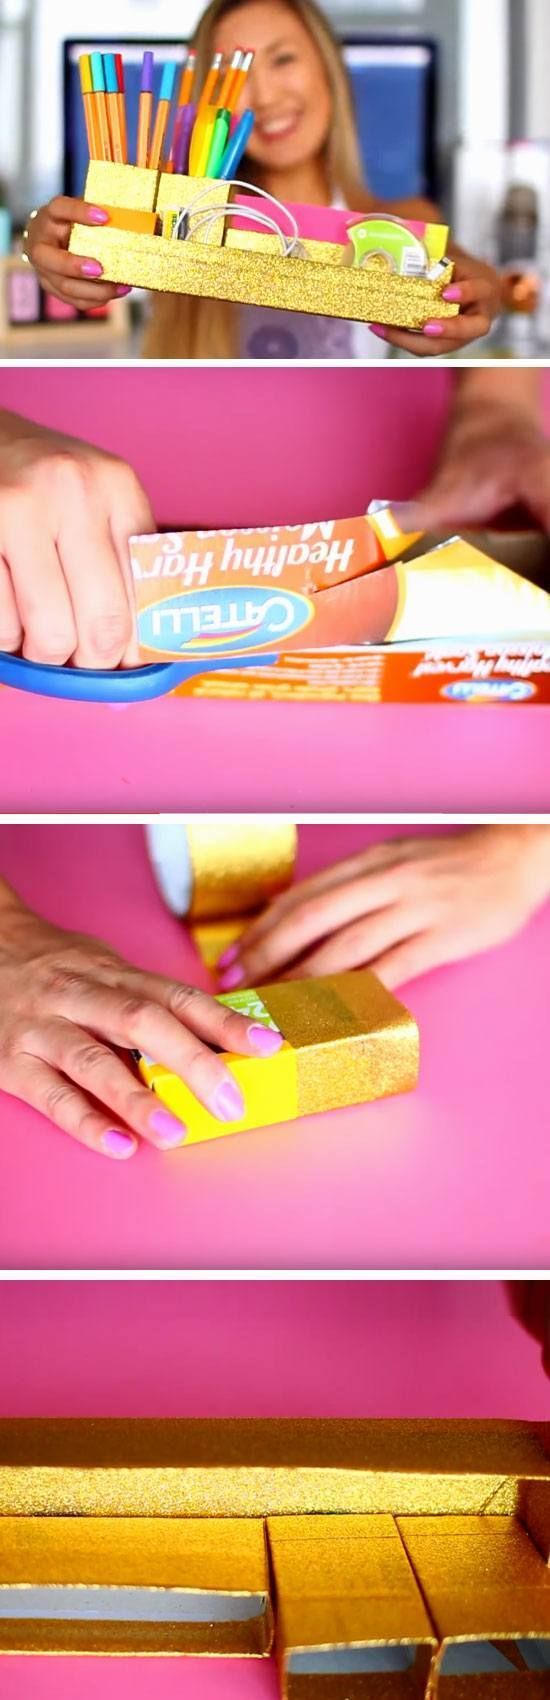 Toothpaste Boxes Make Great Stationary Holders | 18 DIY Dorm Room Organization Hacks for Teens that will keep you super tidy!